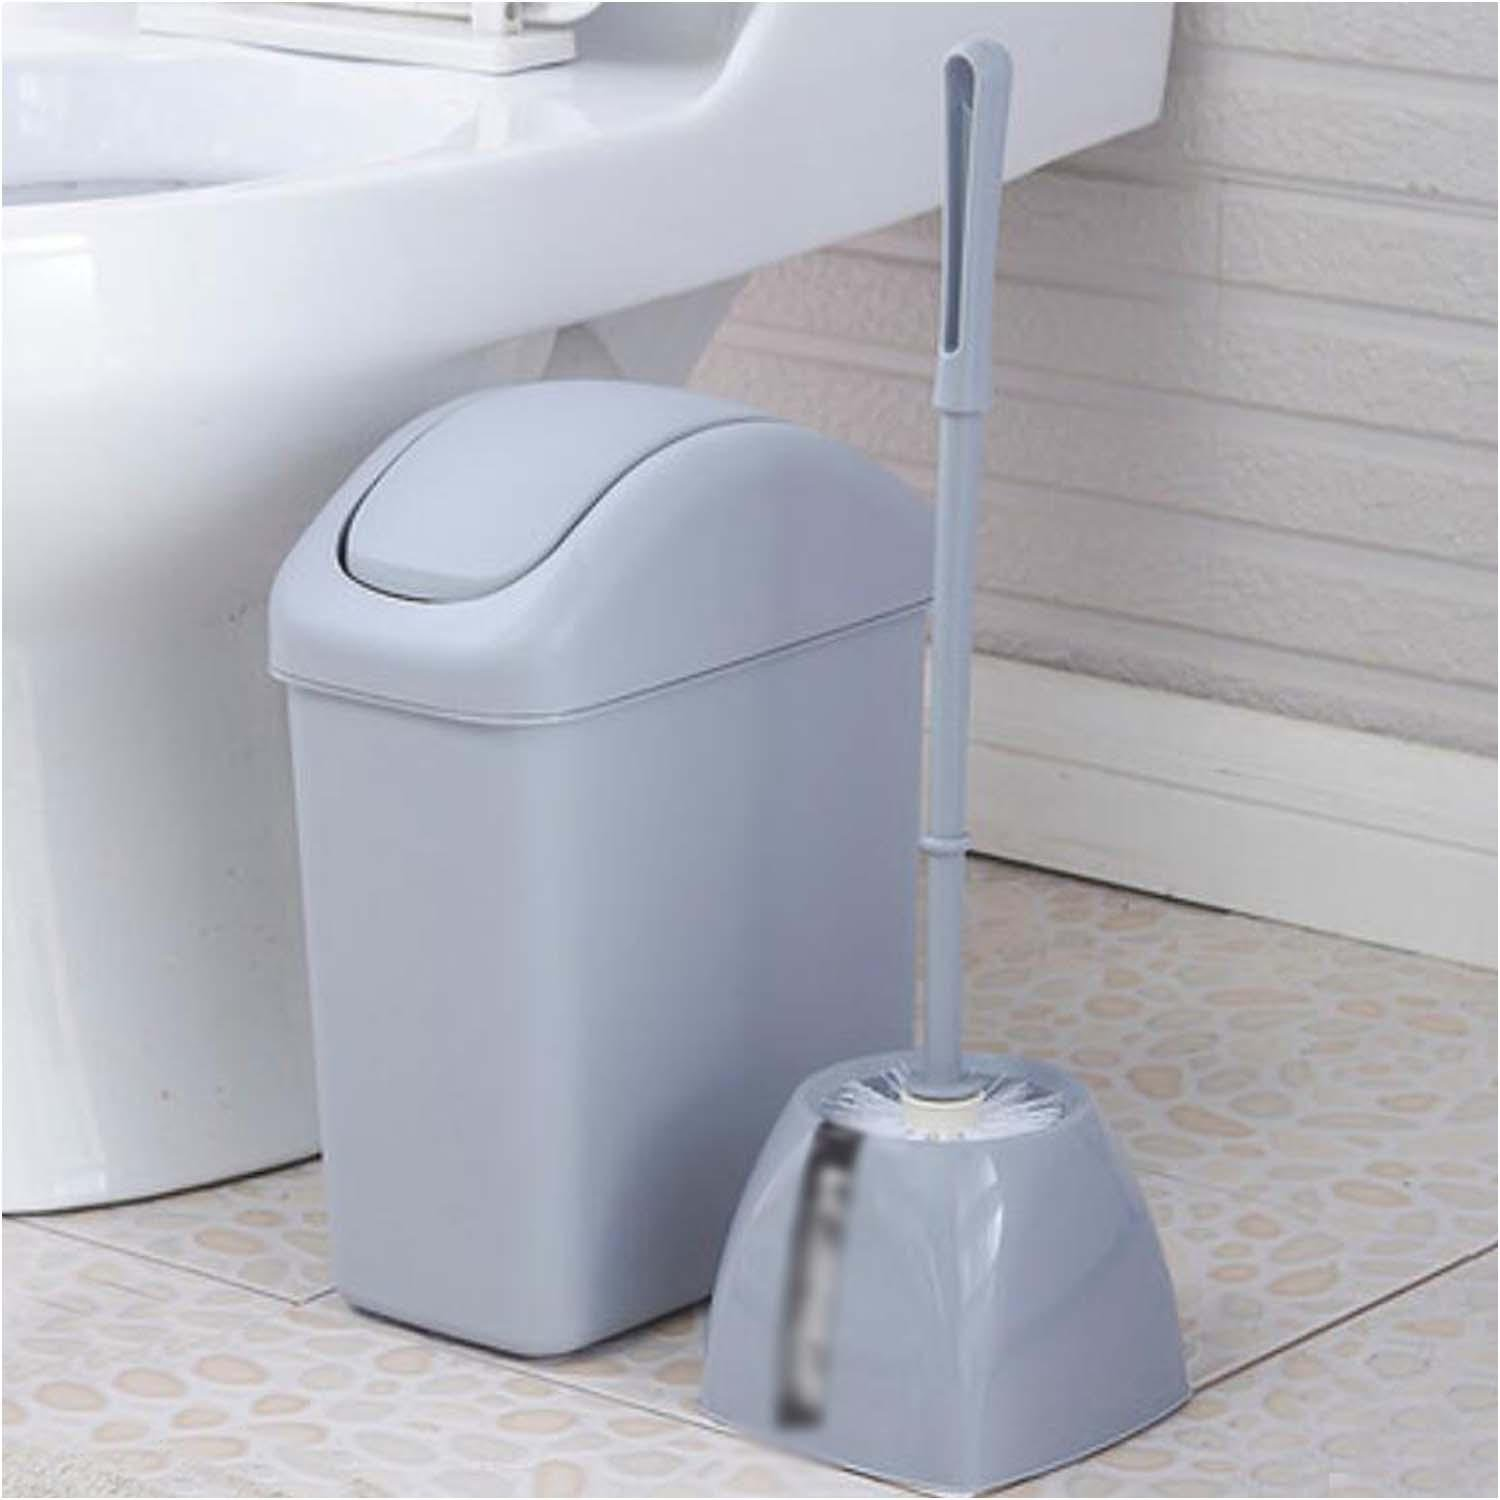 OOFYHOME Shaking trash cans, creative toilet trash cans toilet brush set, covered trash cans , C